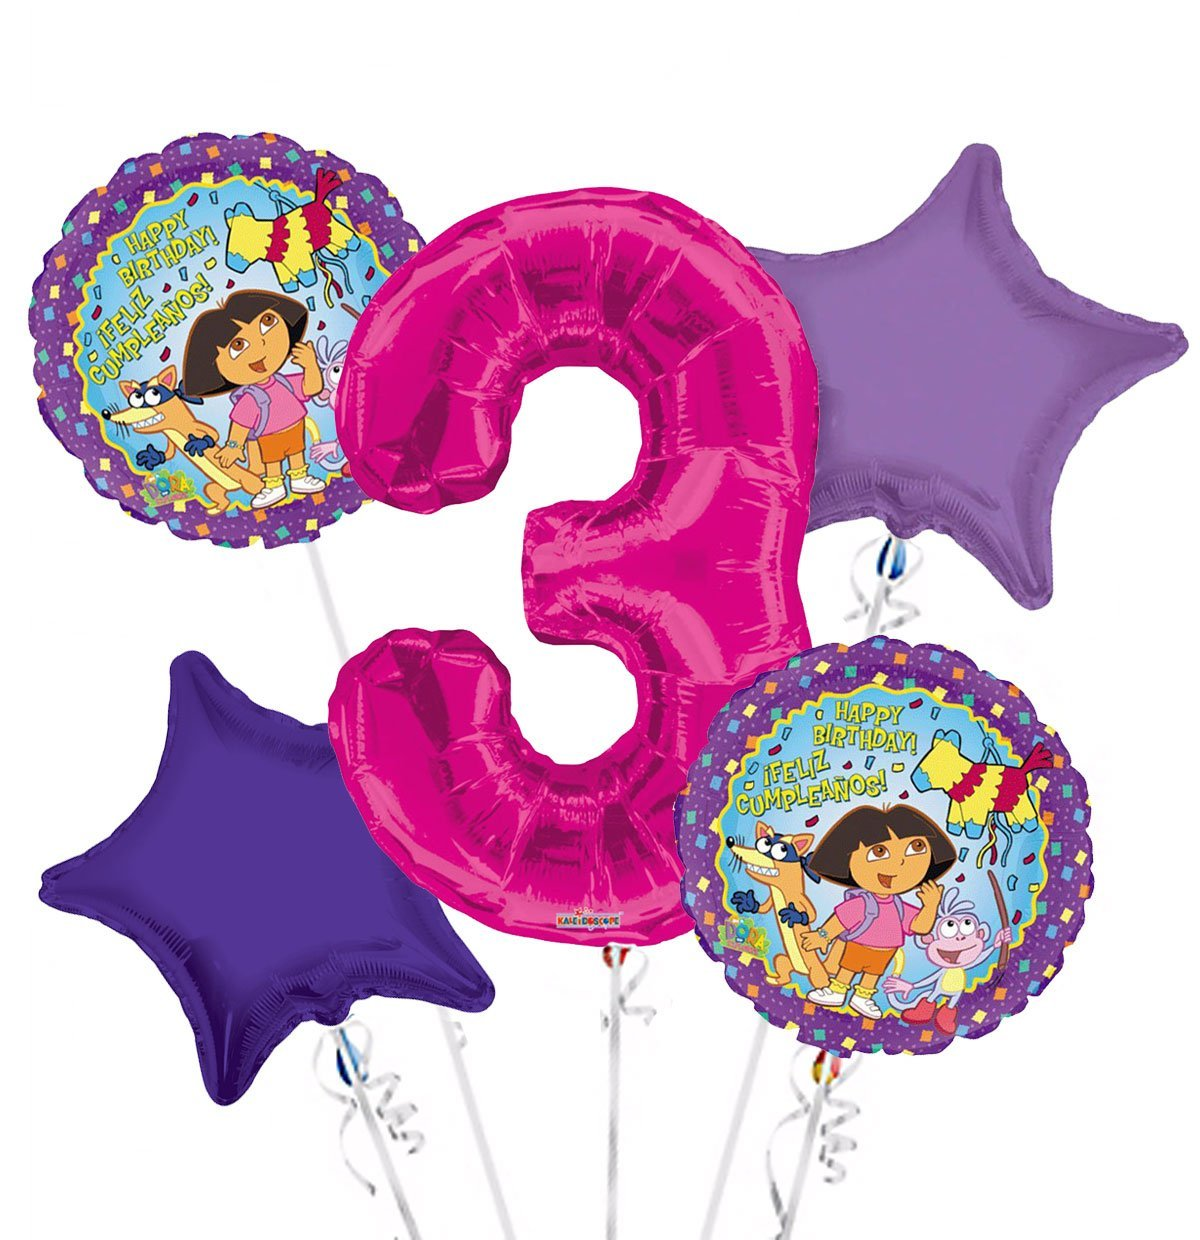 Dora the Explorer Balloon Bouquet 3rd Birthday 5 pcs - Party Supplies, 1 Giant Number 3 Balloon, 34in By Viva Party